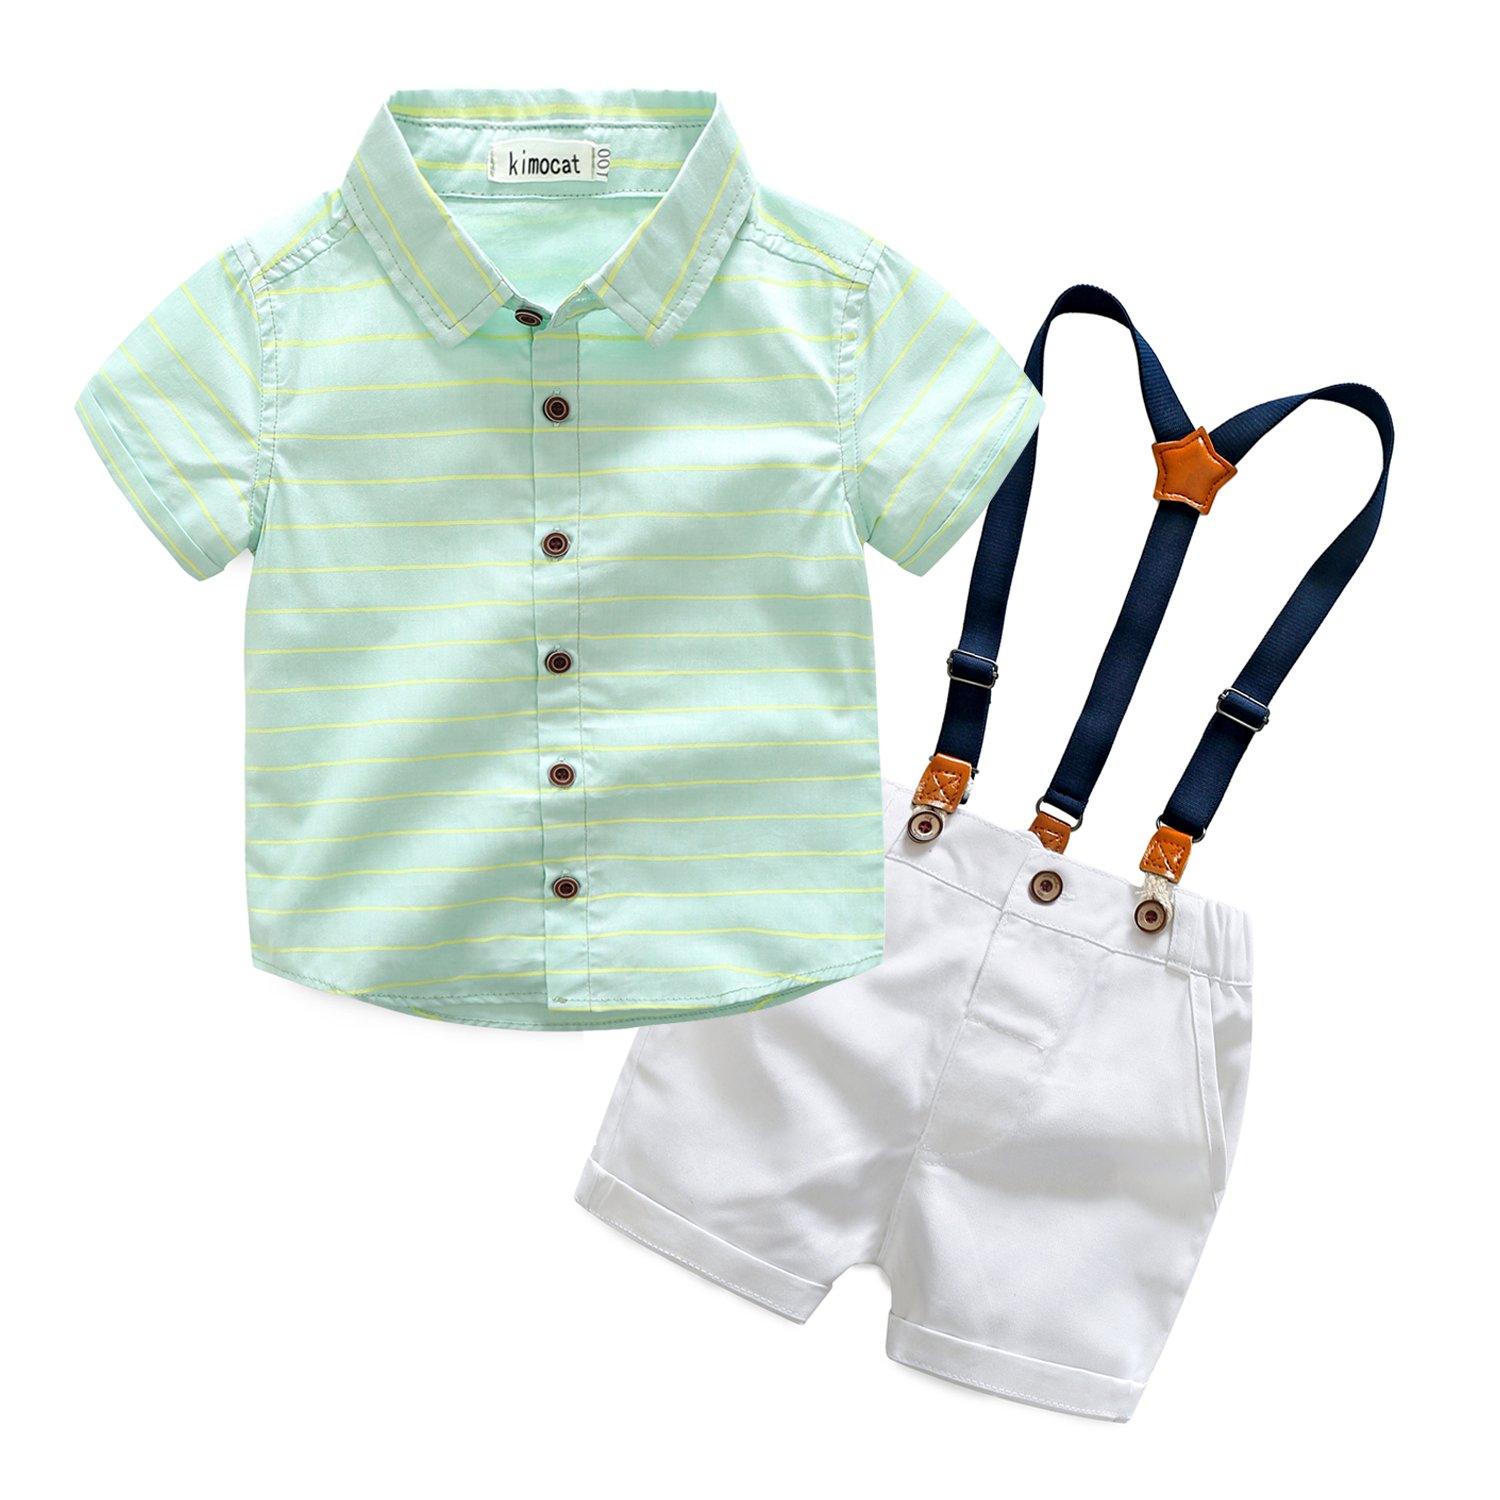 Casual Suit for Toddler Boys Stripes Woven Shirt and Suspender Strap Shorts Outfits